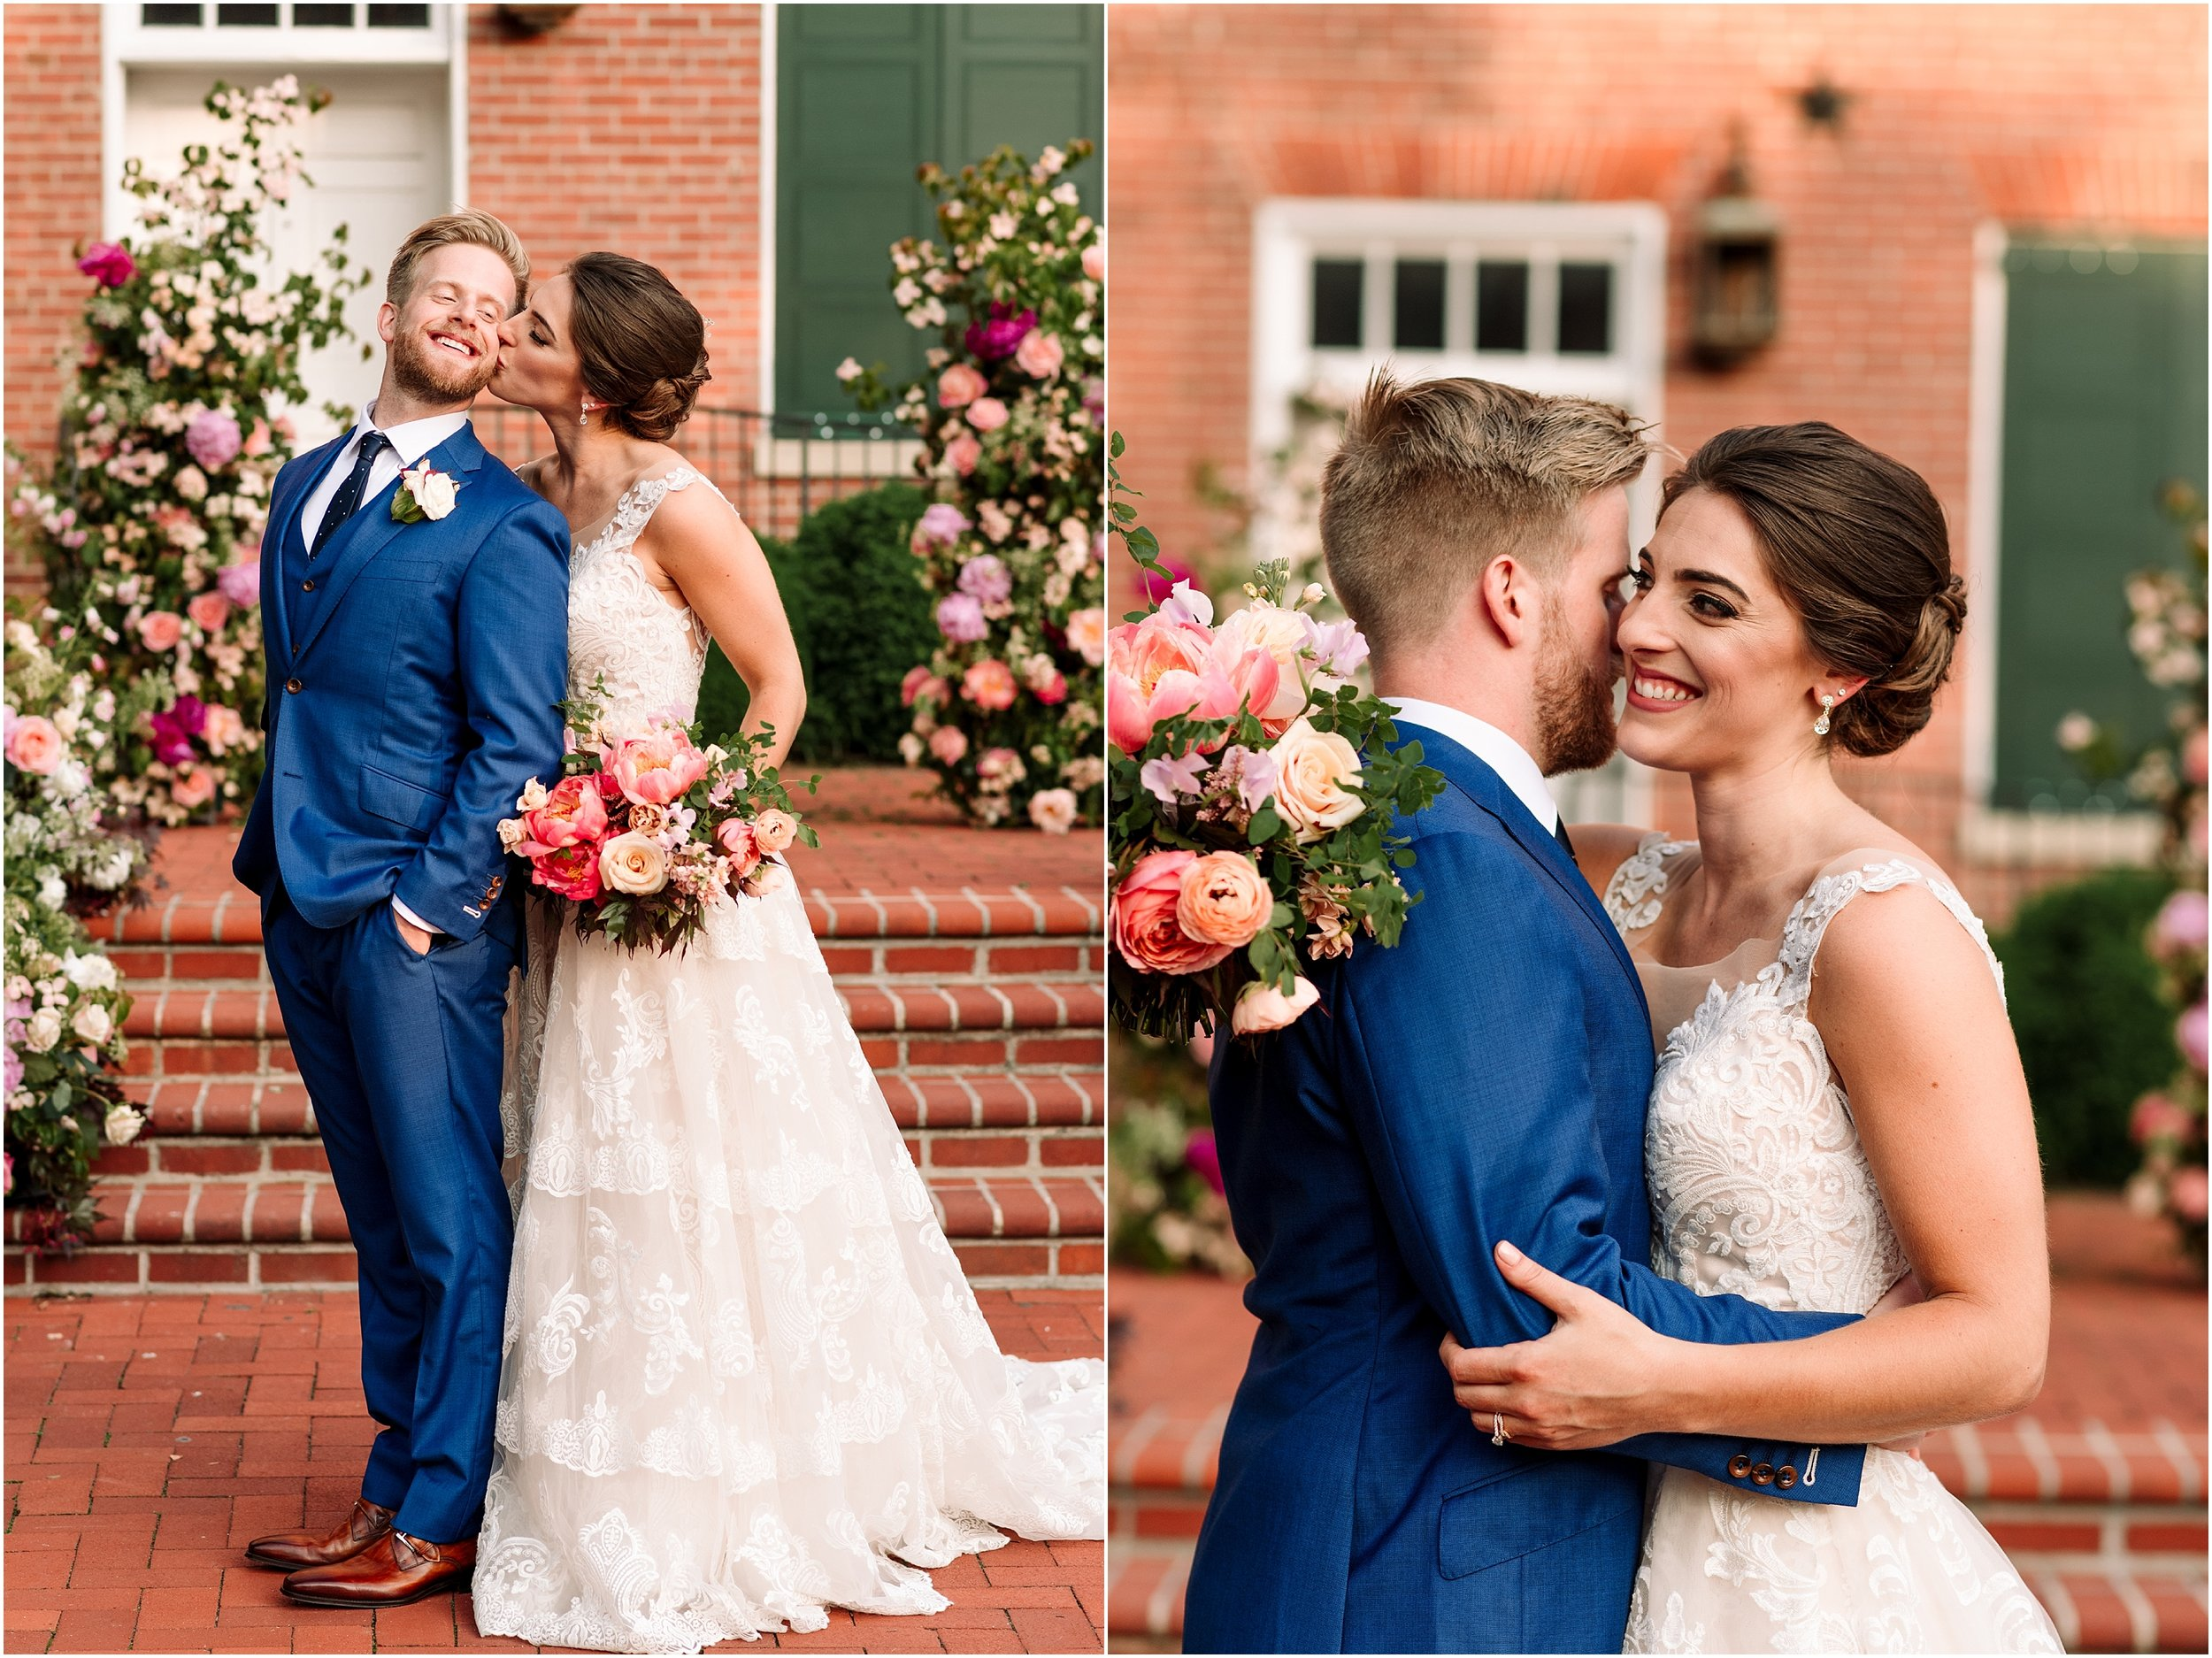 hannah leigh photography 1840s plaza wedding baltimore md_0074.jpg